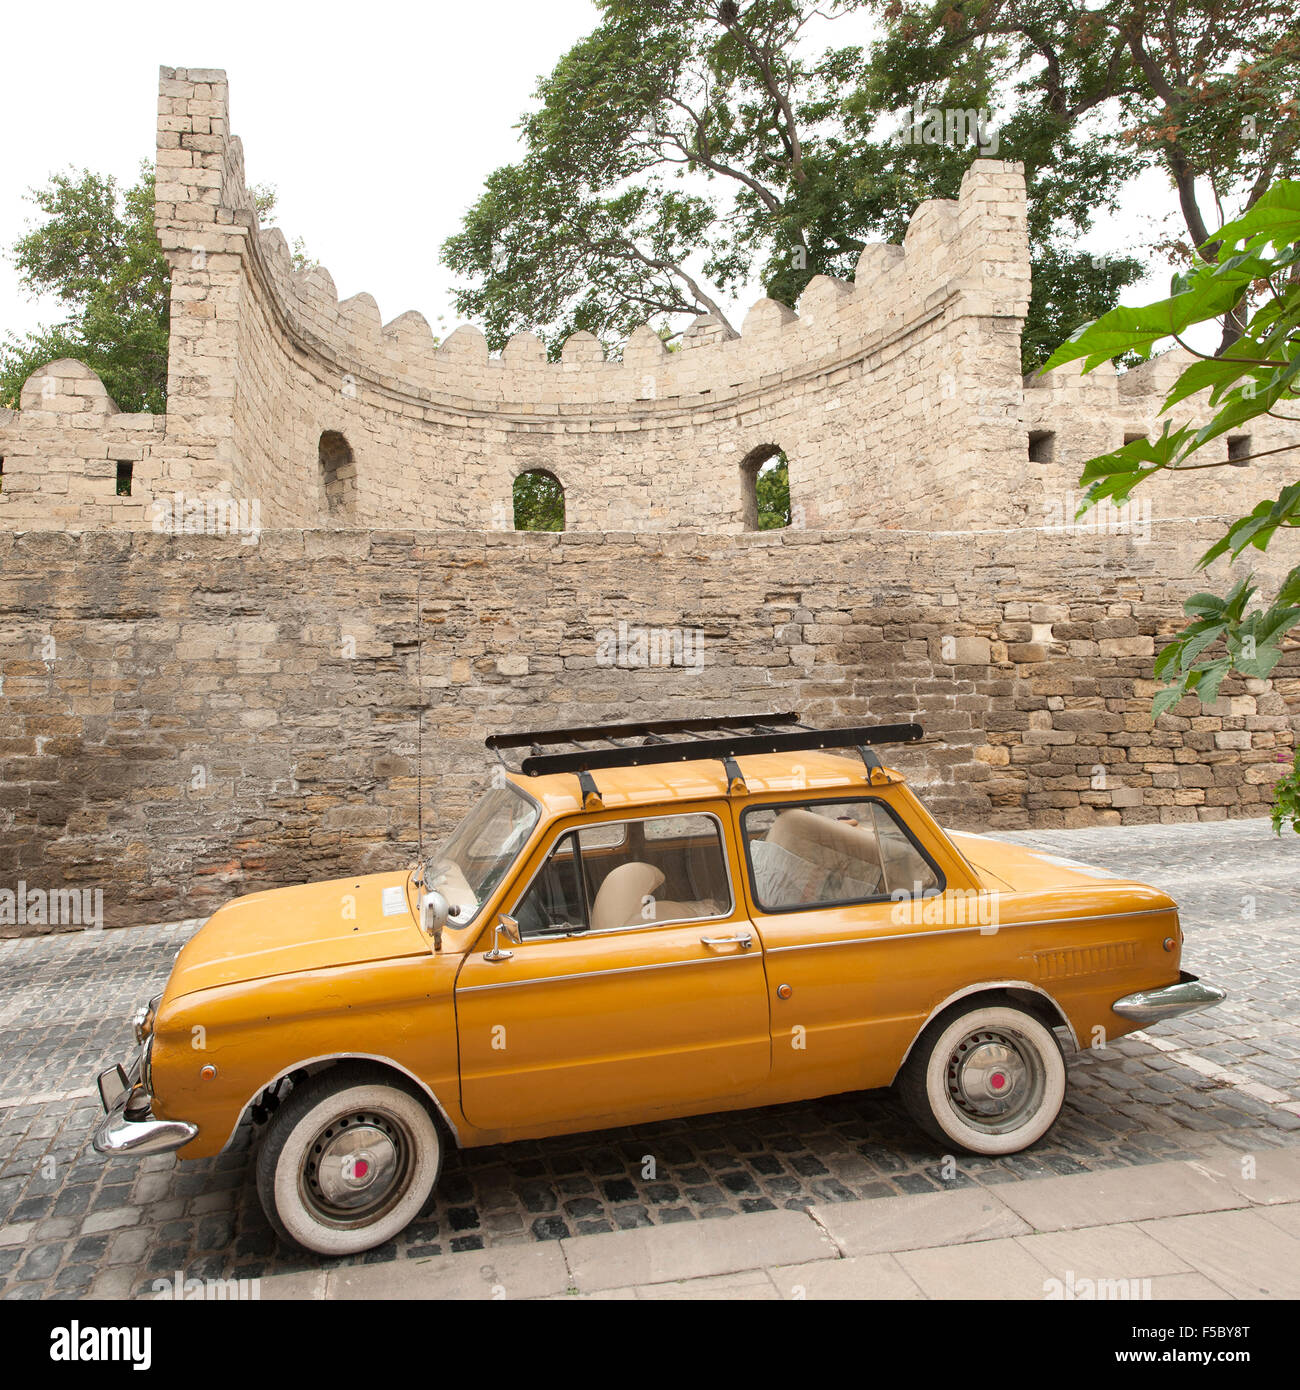 Old car parked on a street in İcheri Sheher, the old town in Baku, the capital of Azerbaijan. - Stock Image